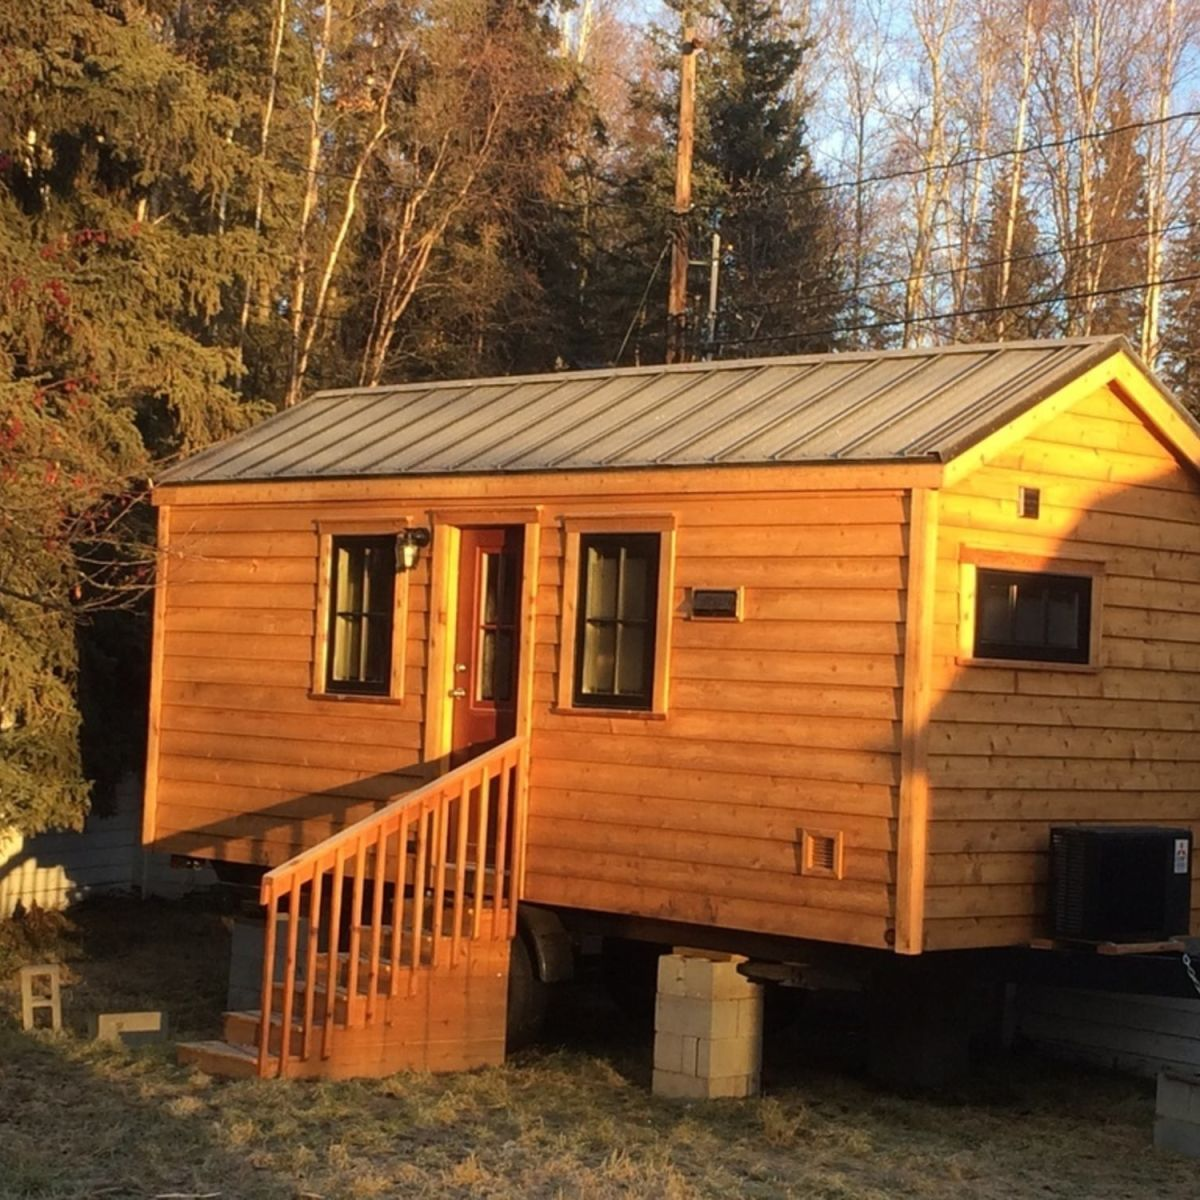 Used Tumbleweed Tiny House For Sale Tiny House For Sale In Anchorage Alaska Tiny House Listings Tumbleweed Tiny Homes Primitive Homes Tiny House Listings